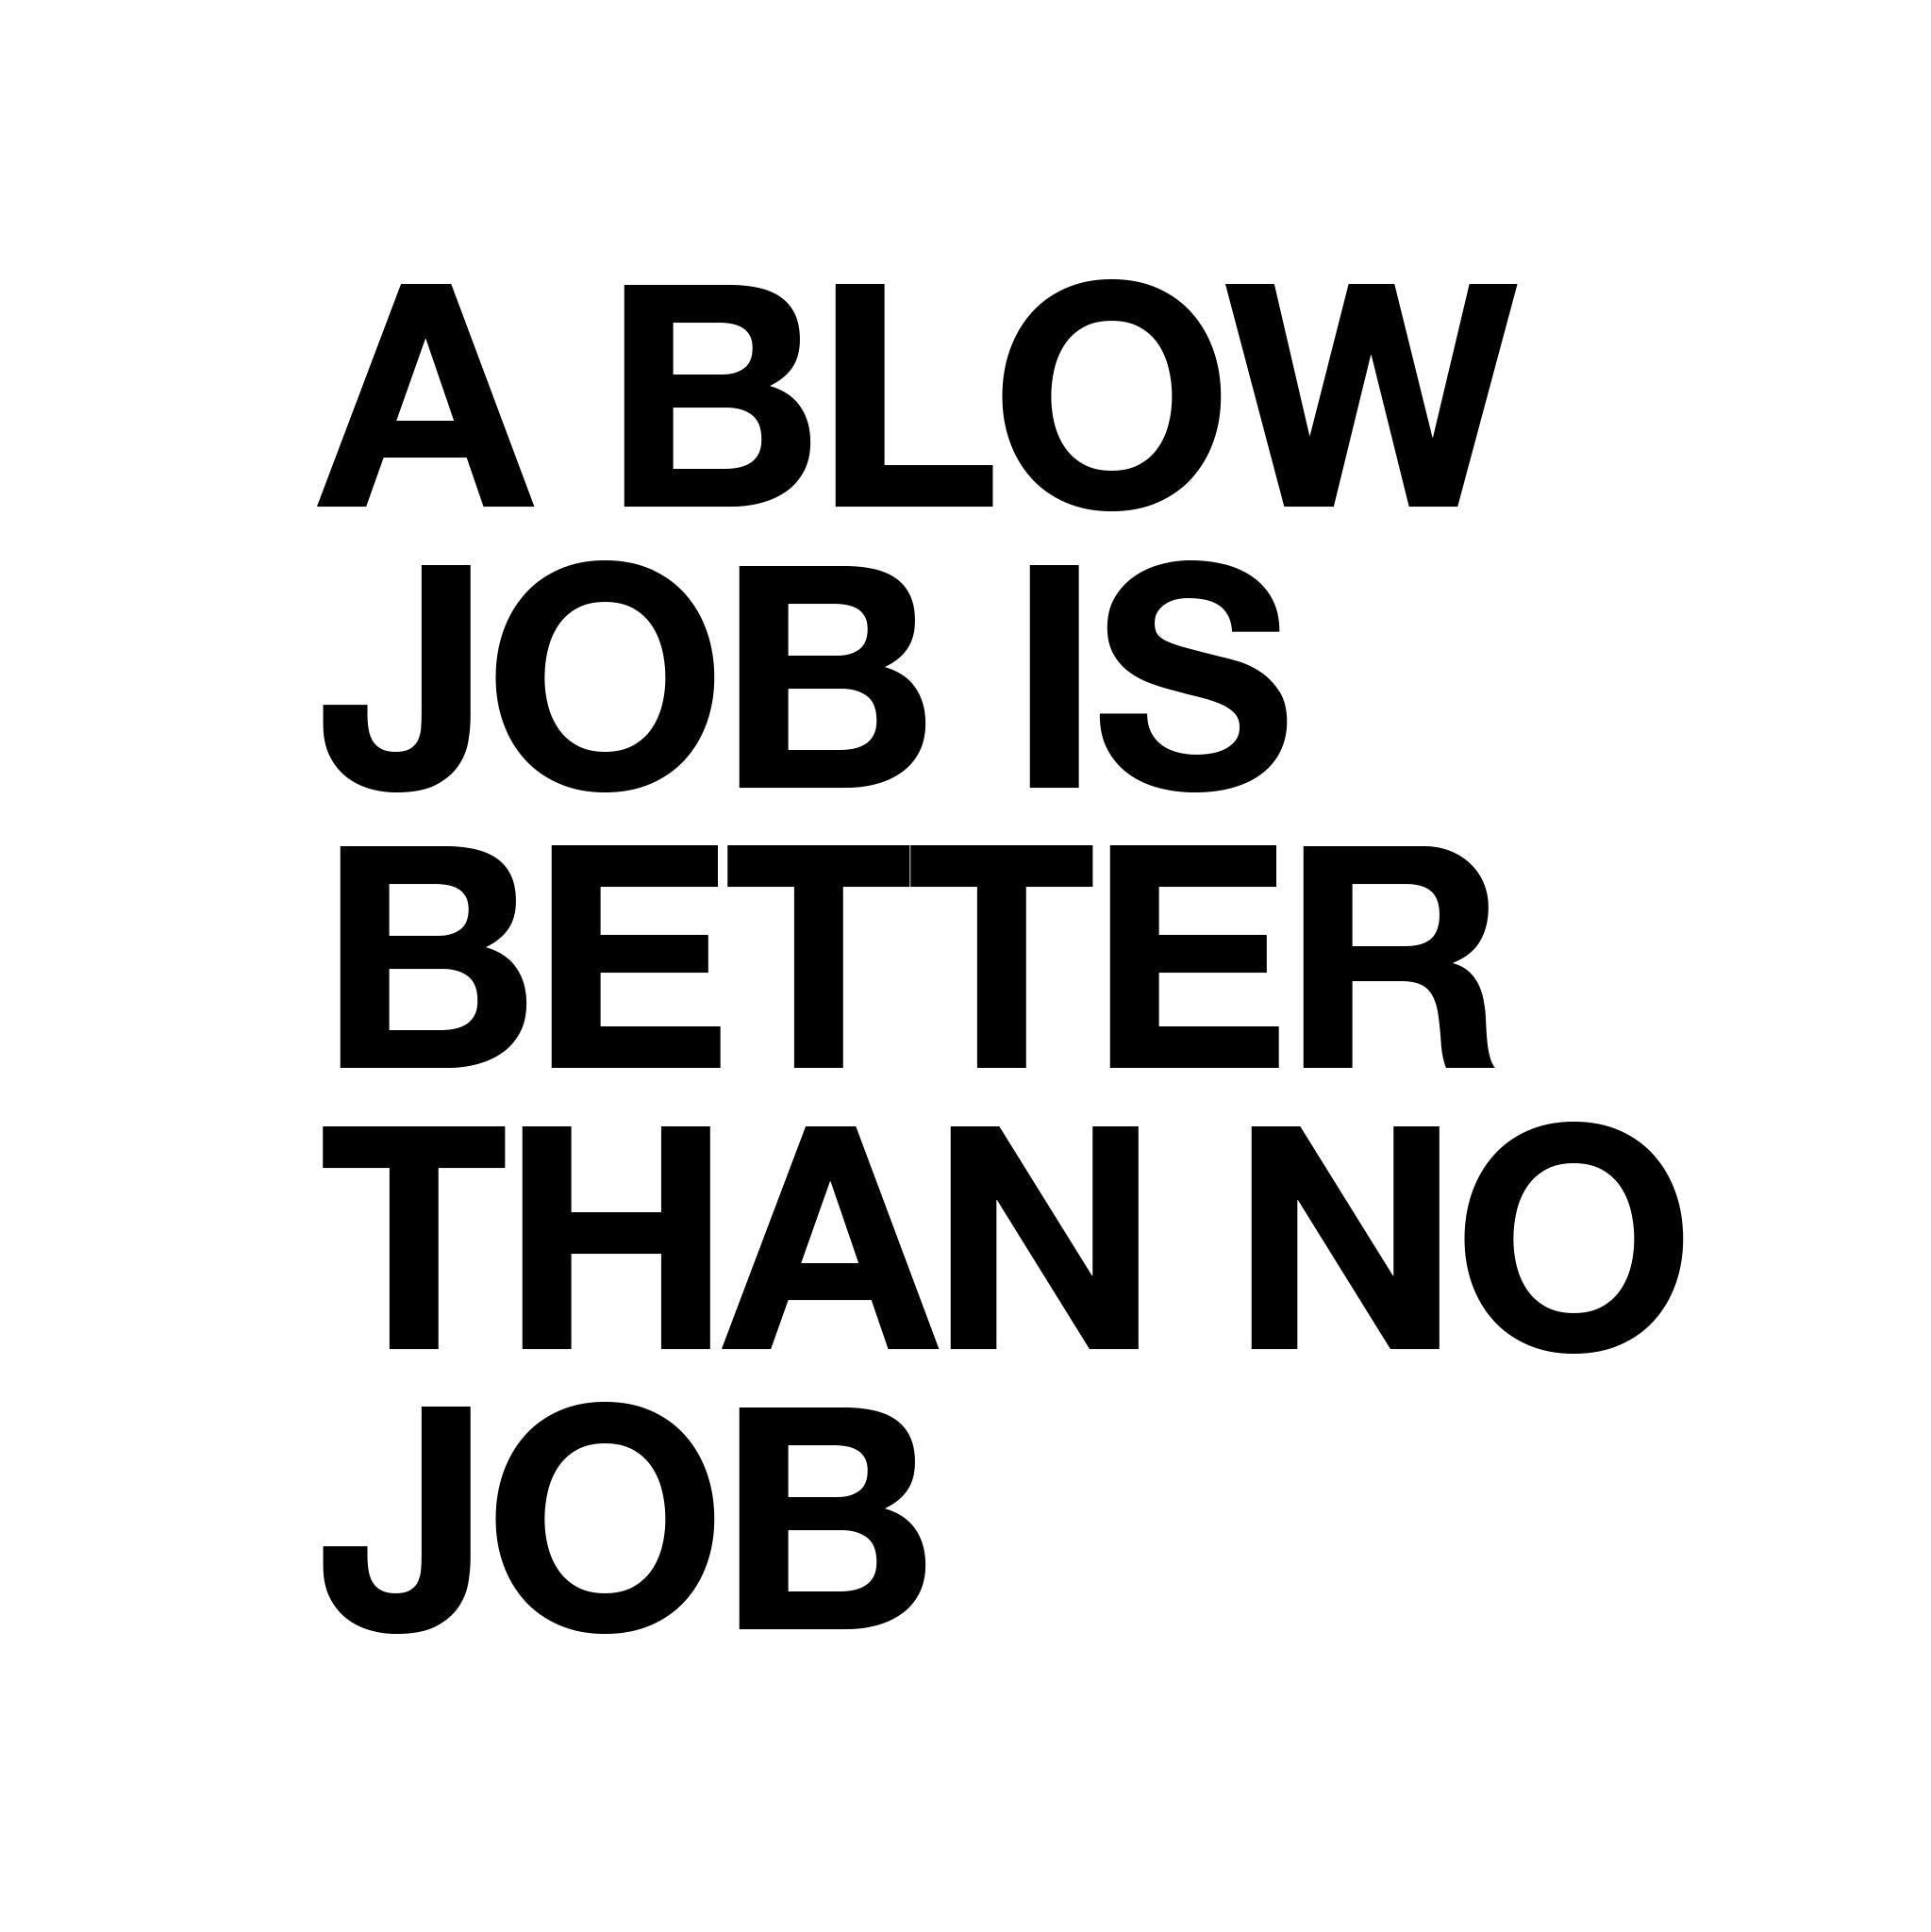 A blow job is better than no job